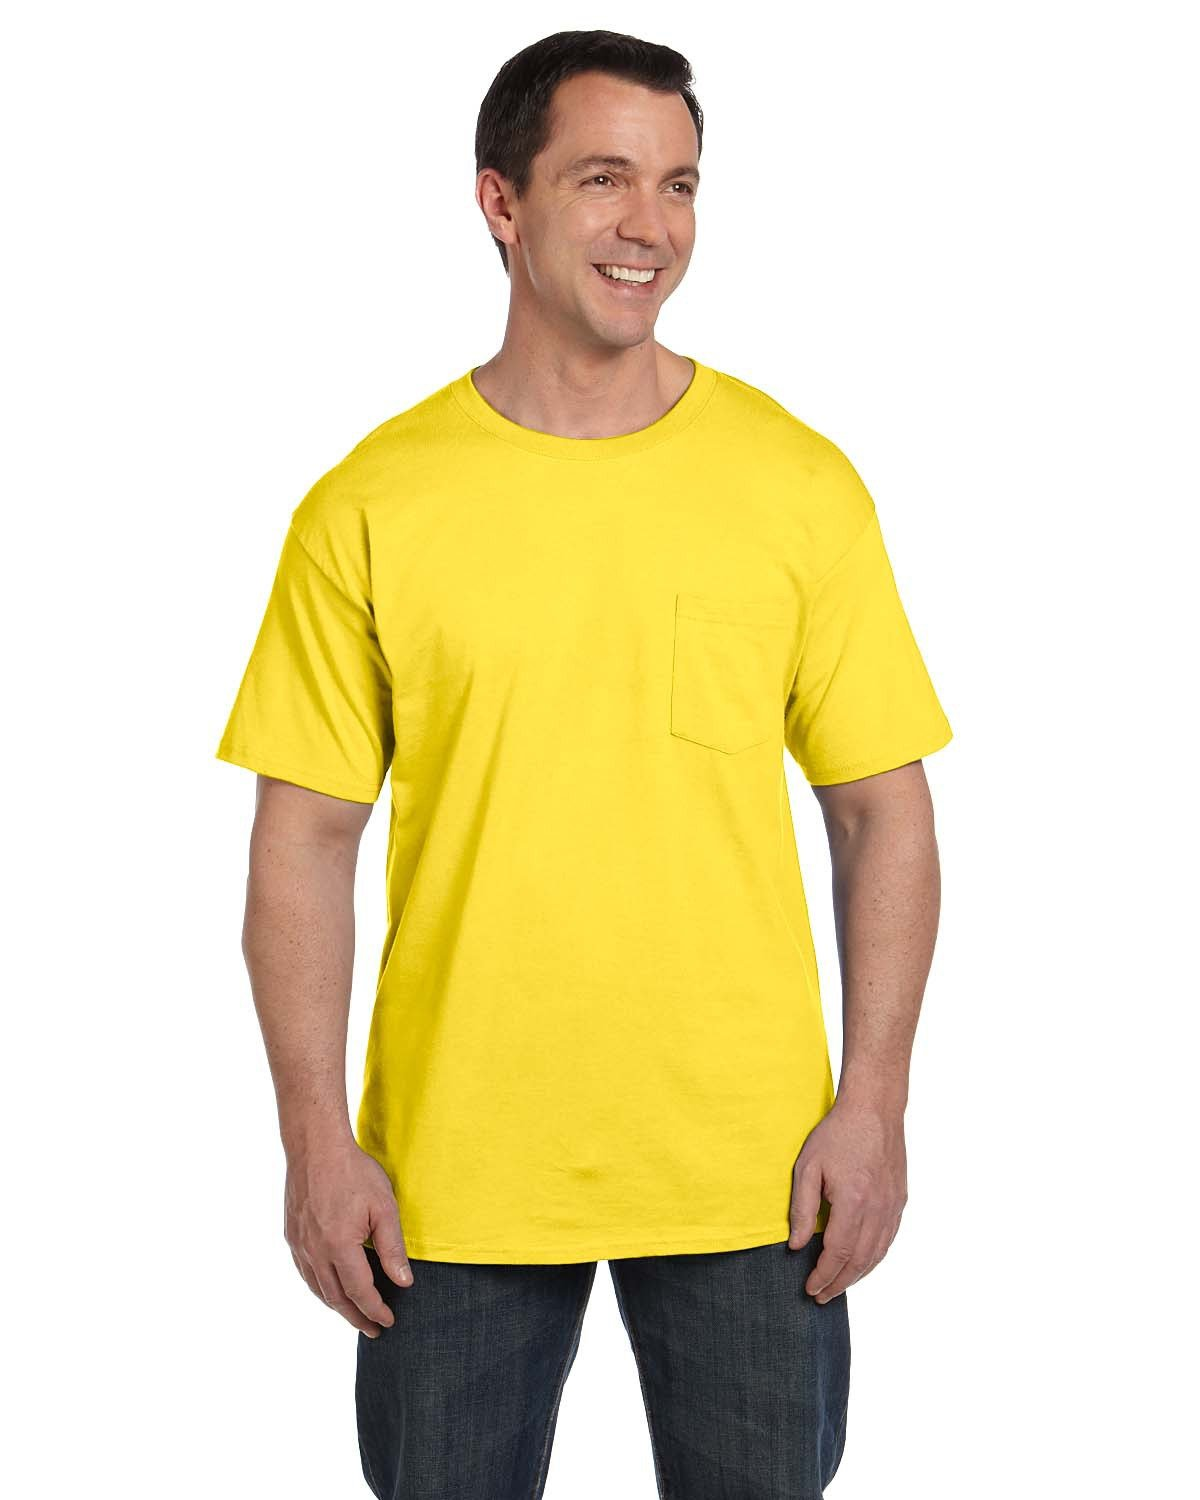 Hanes Adult Beefy-T® with Pocket YELLOW